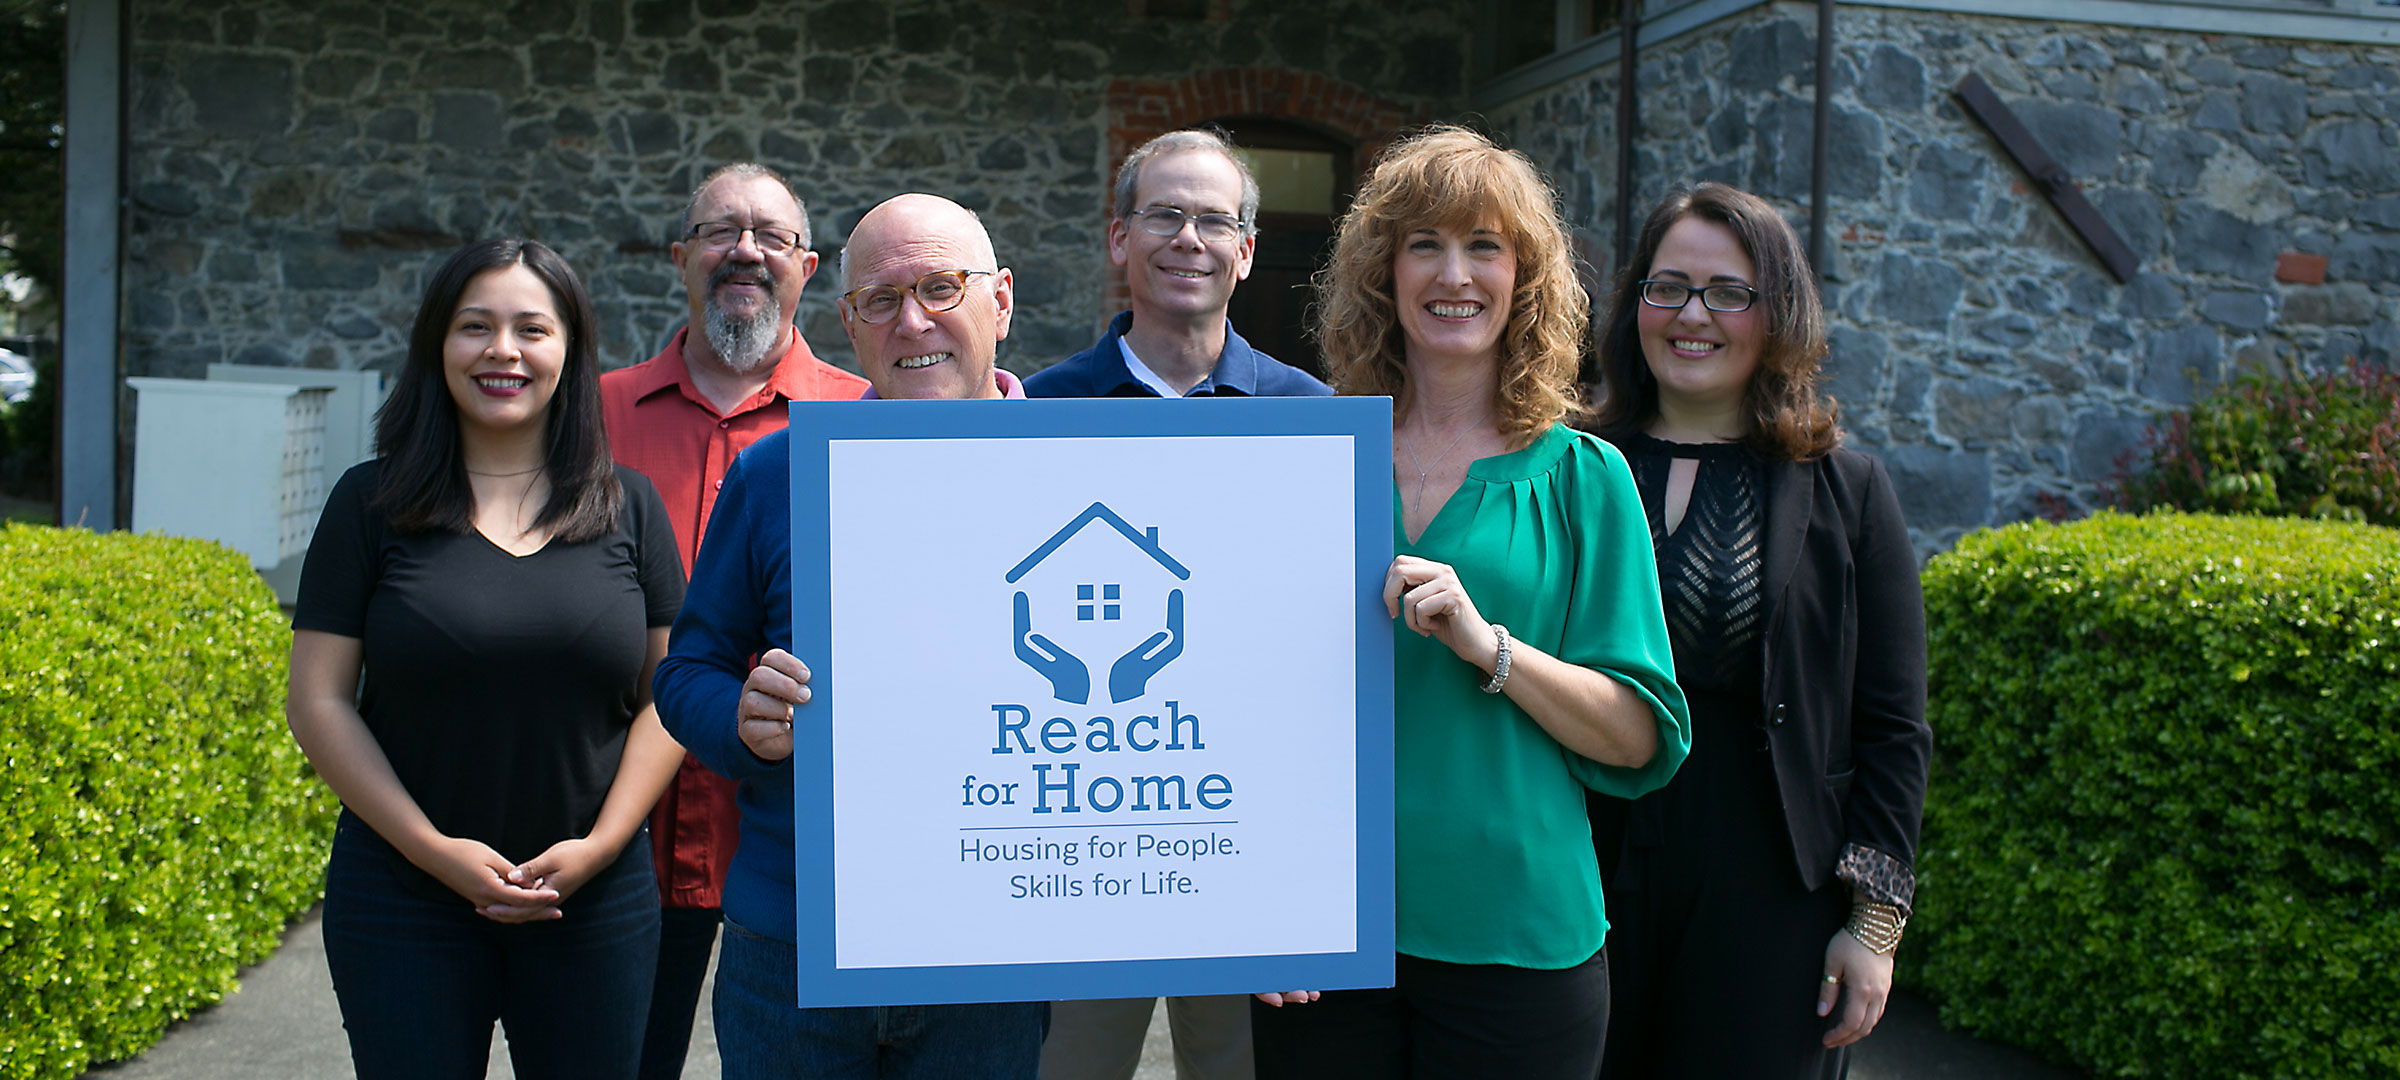 Welcome to Reach for Home!